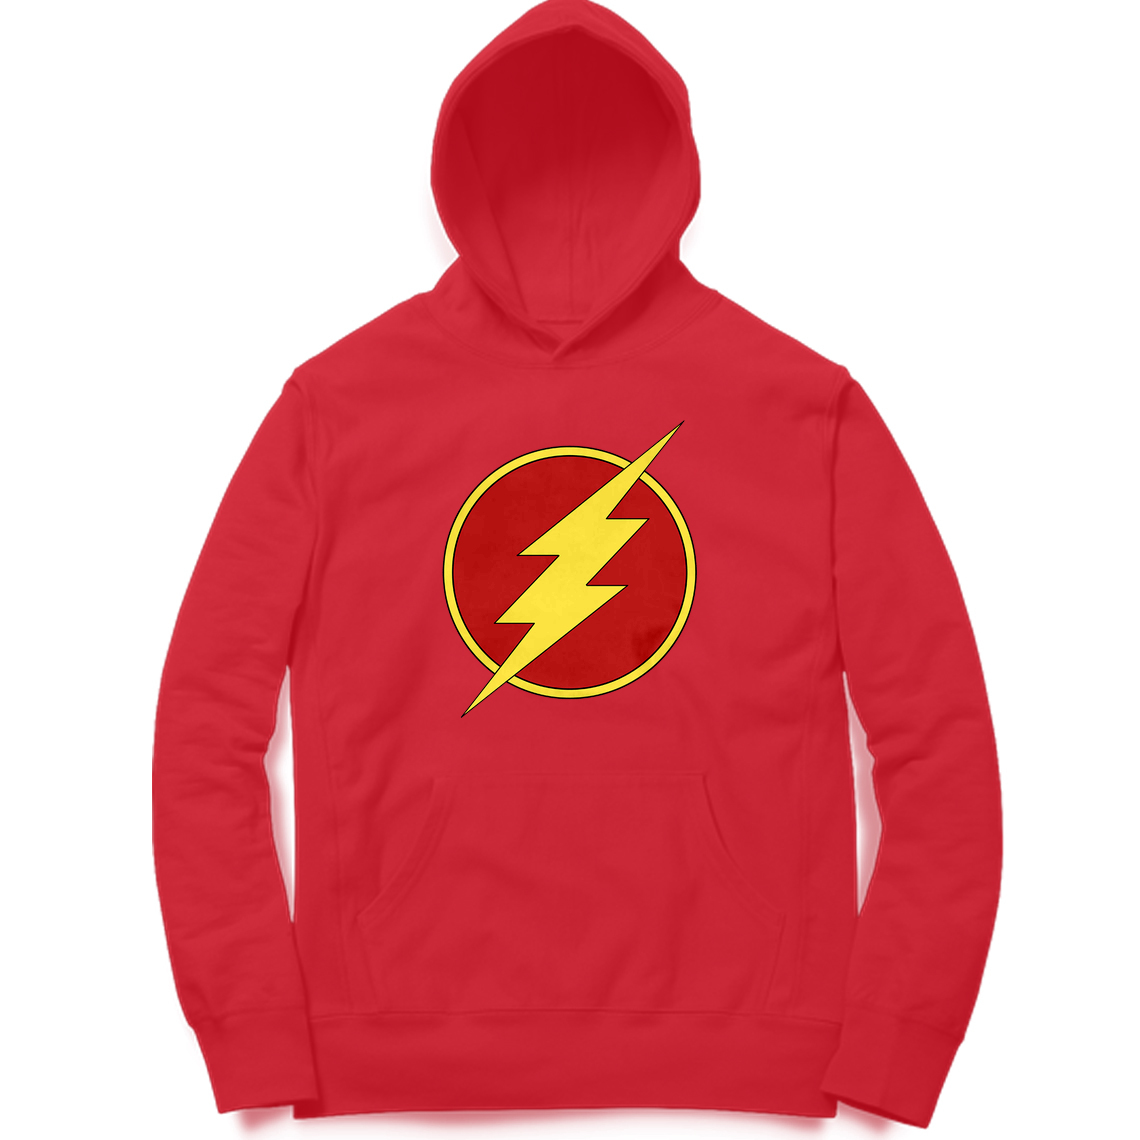 buy Flash Hoodie | DC Merch